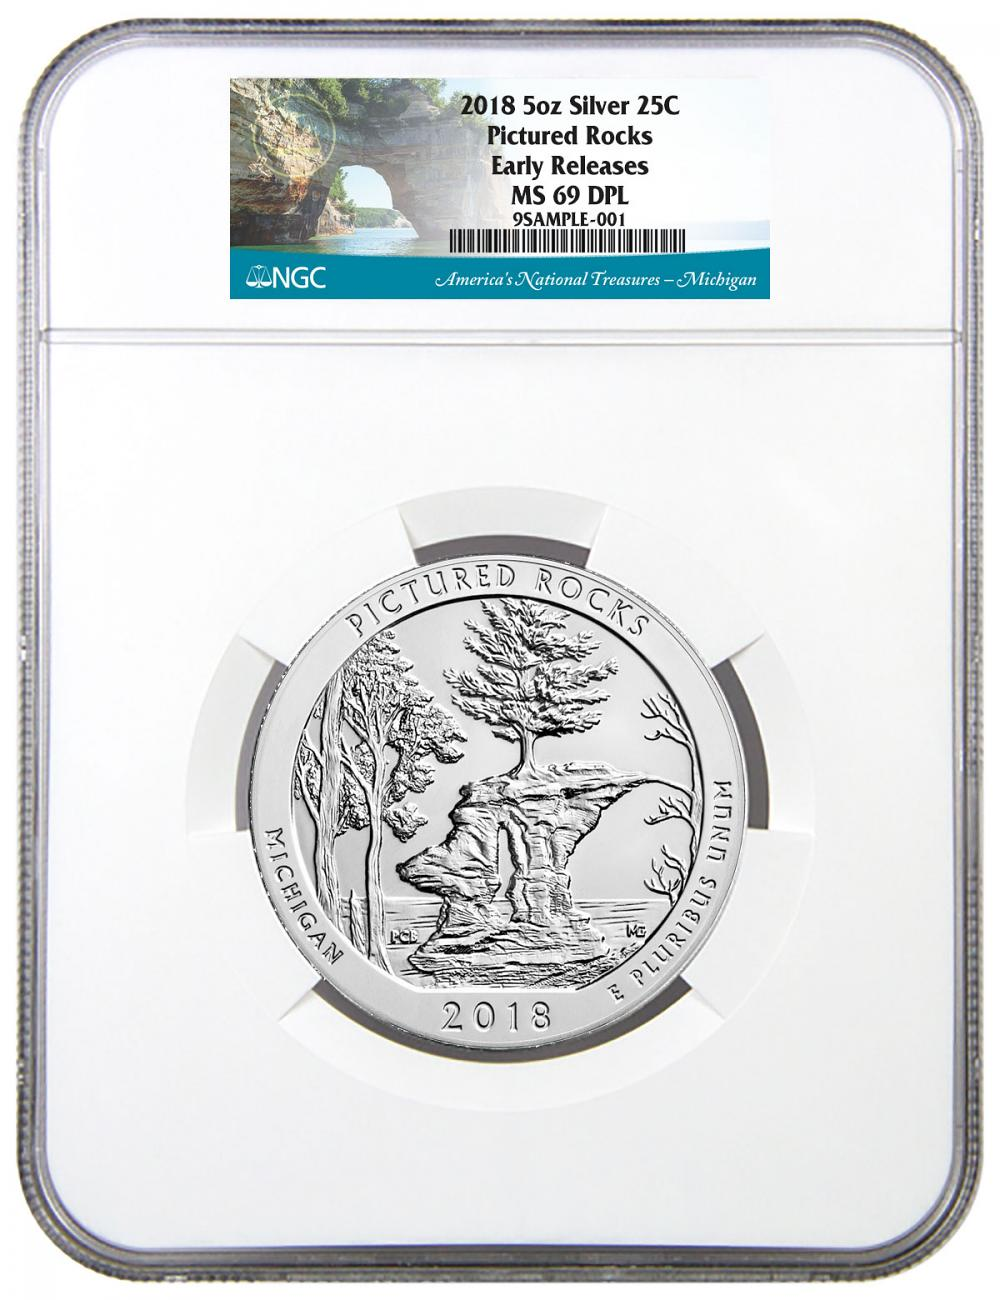 2018 Pictured Rocks 5 oz. Silver America the Beautiful Coin NGC MS69 DPL ER